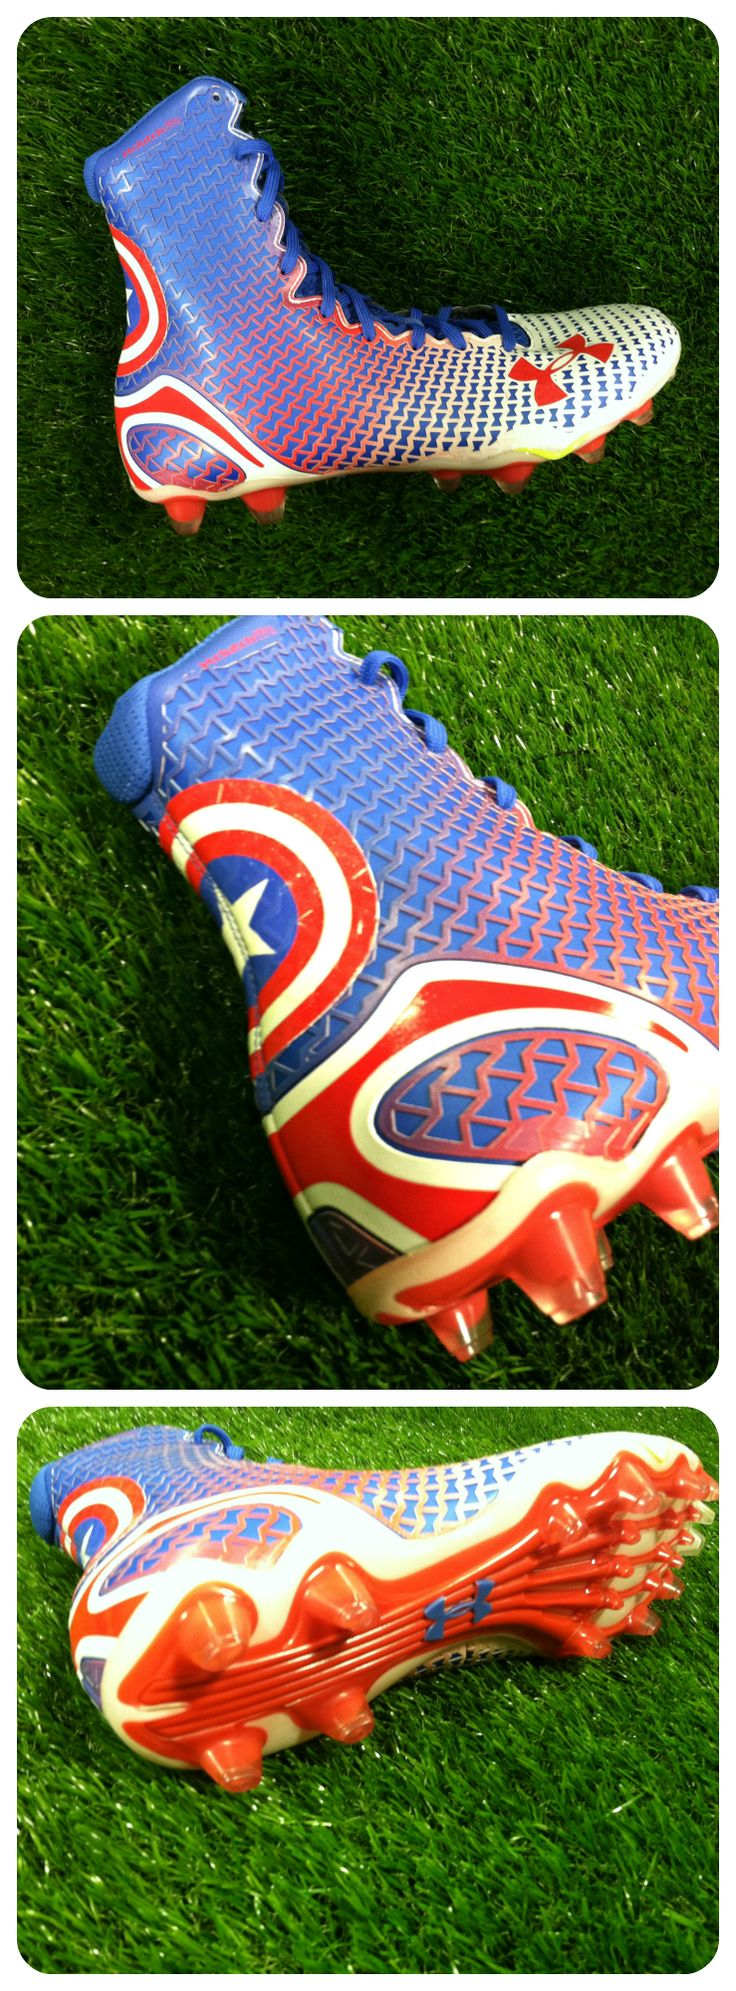 Transform yourself with the Under Armour Highlight Cleat - Captain America